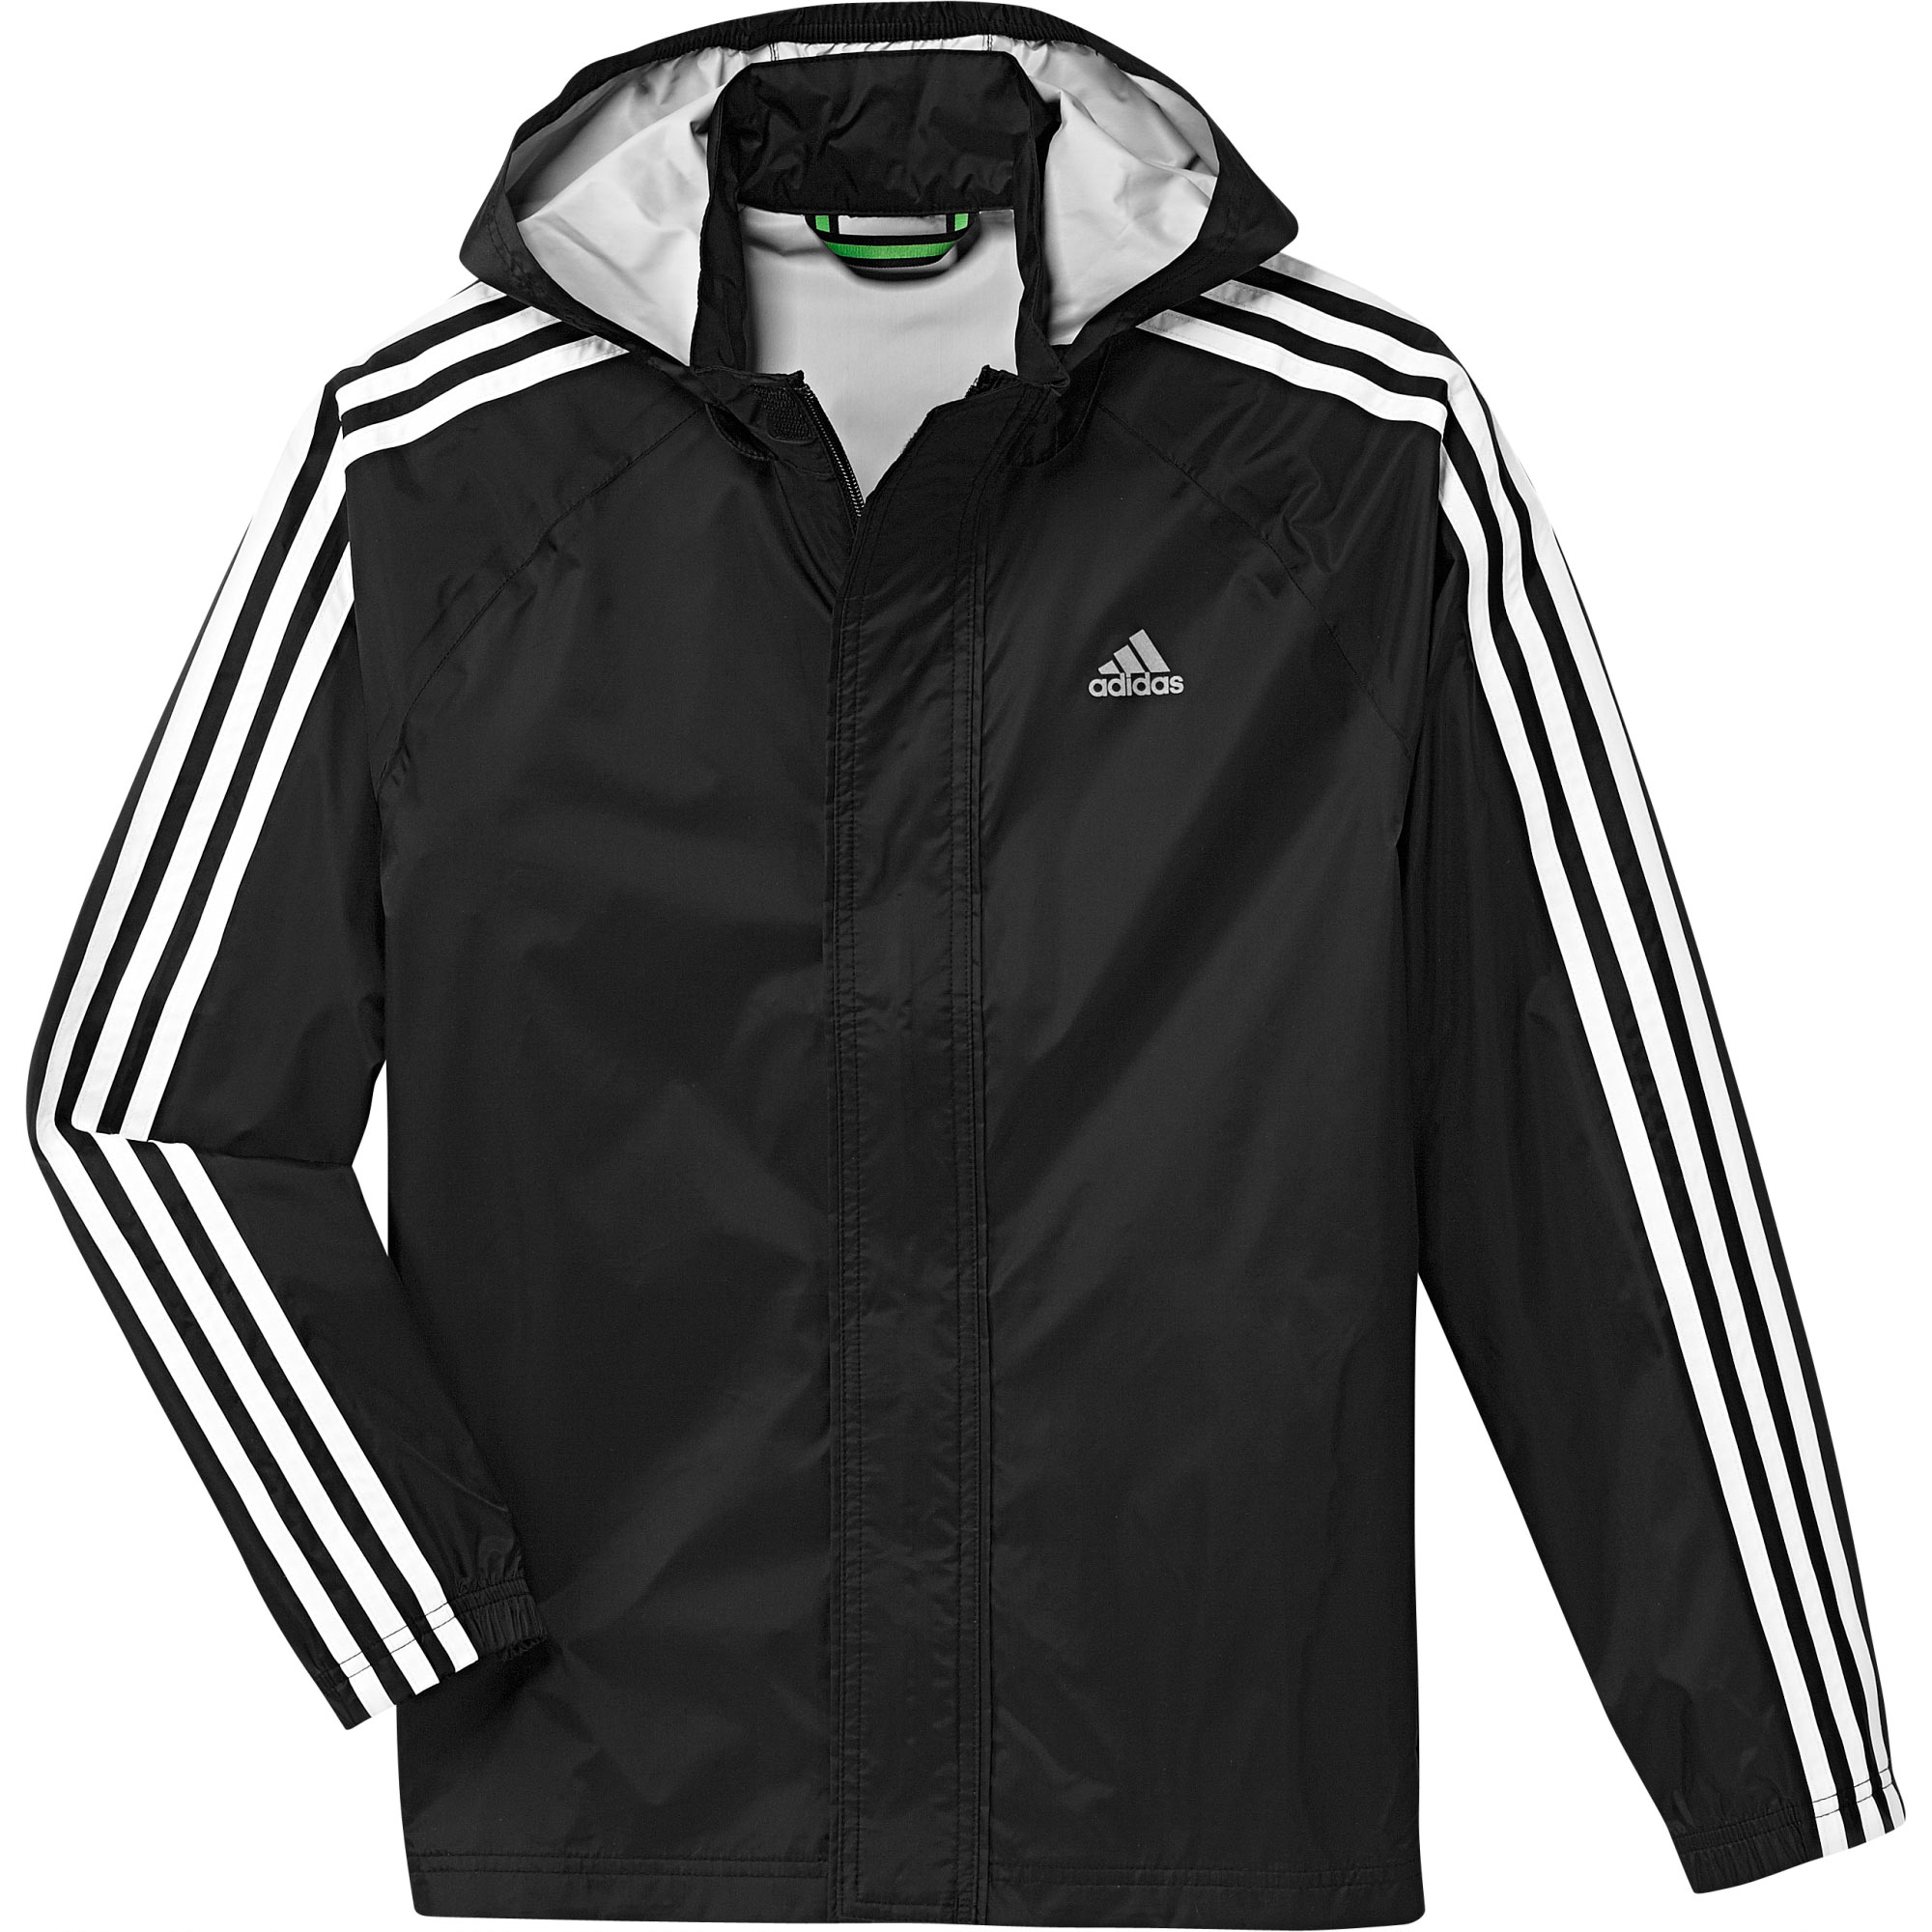 Buy adidas jacket mens Blue > OFF55% Discounted